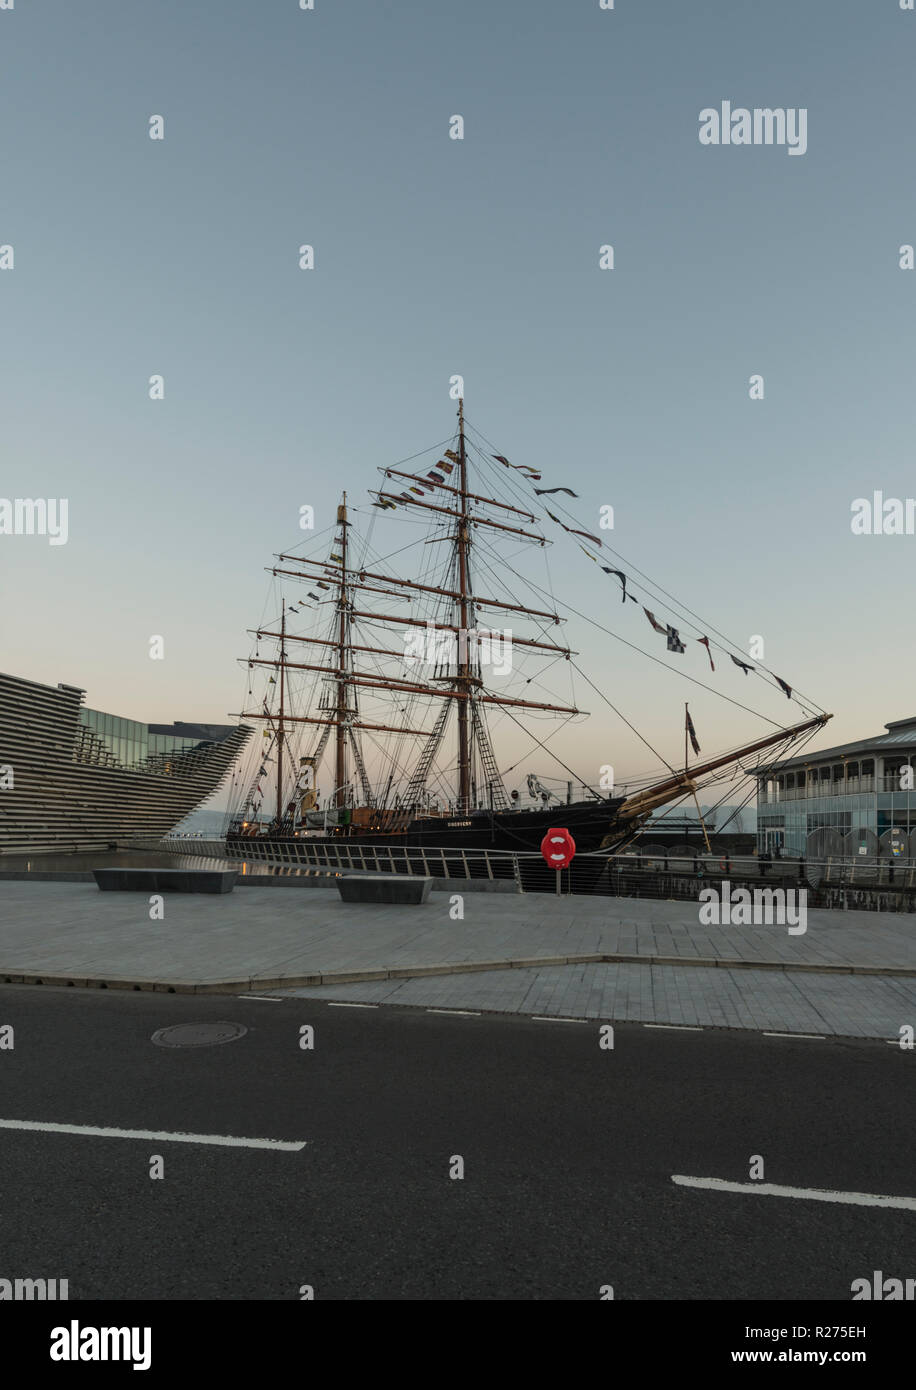 RRS Discovery, the last wooden ship built in Britain,is docked beside the V&A design museum as part of the waterfront regeneration scheme in Dundee,UK - Stock Image